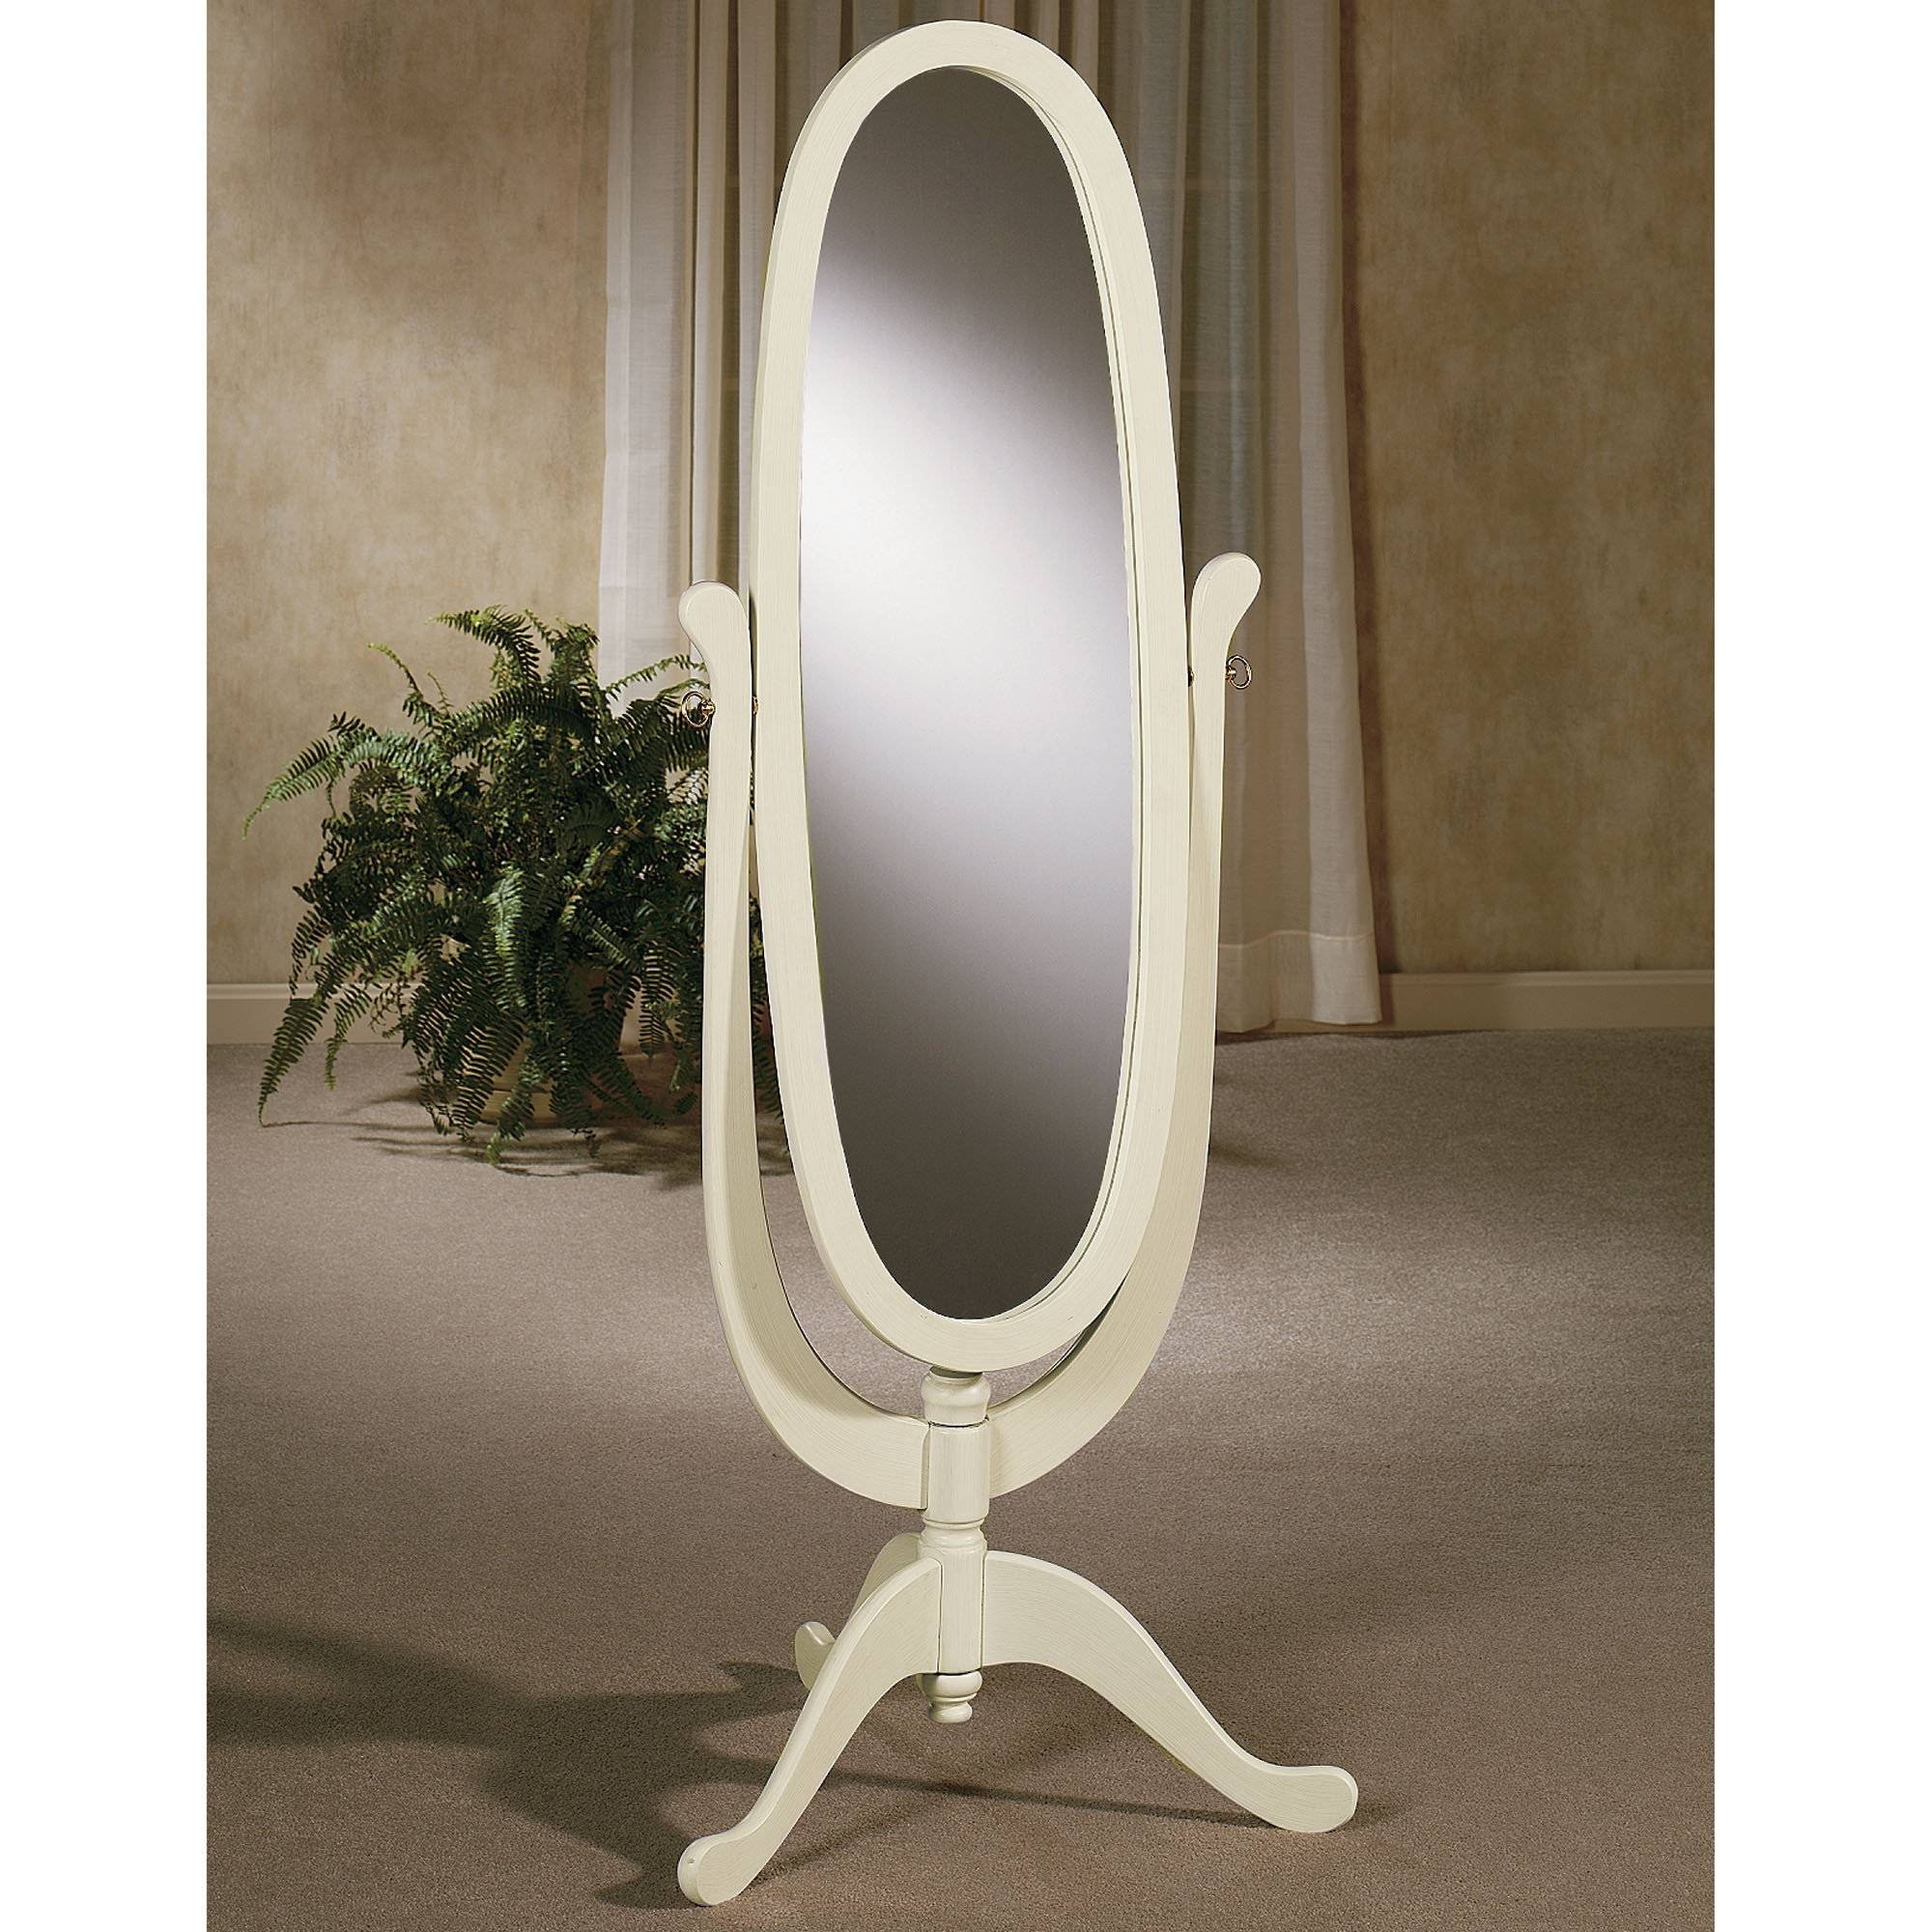 Decorating: Wooden White Cheval Mirror With Wooden Floor And Vase intended for Free Standing Oval Mirrors (Image 10 of 25)